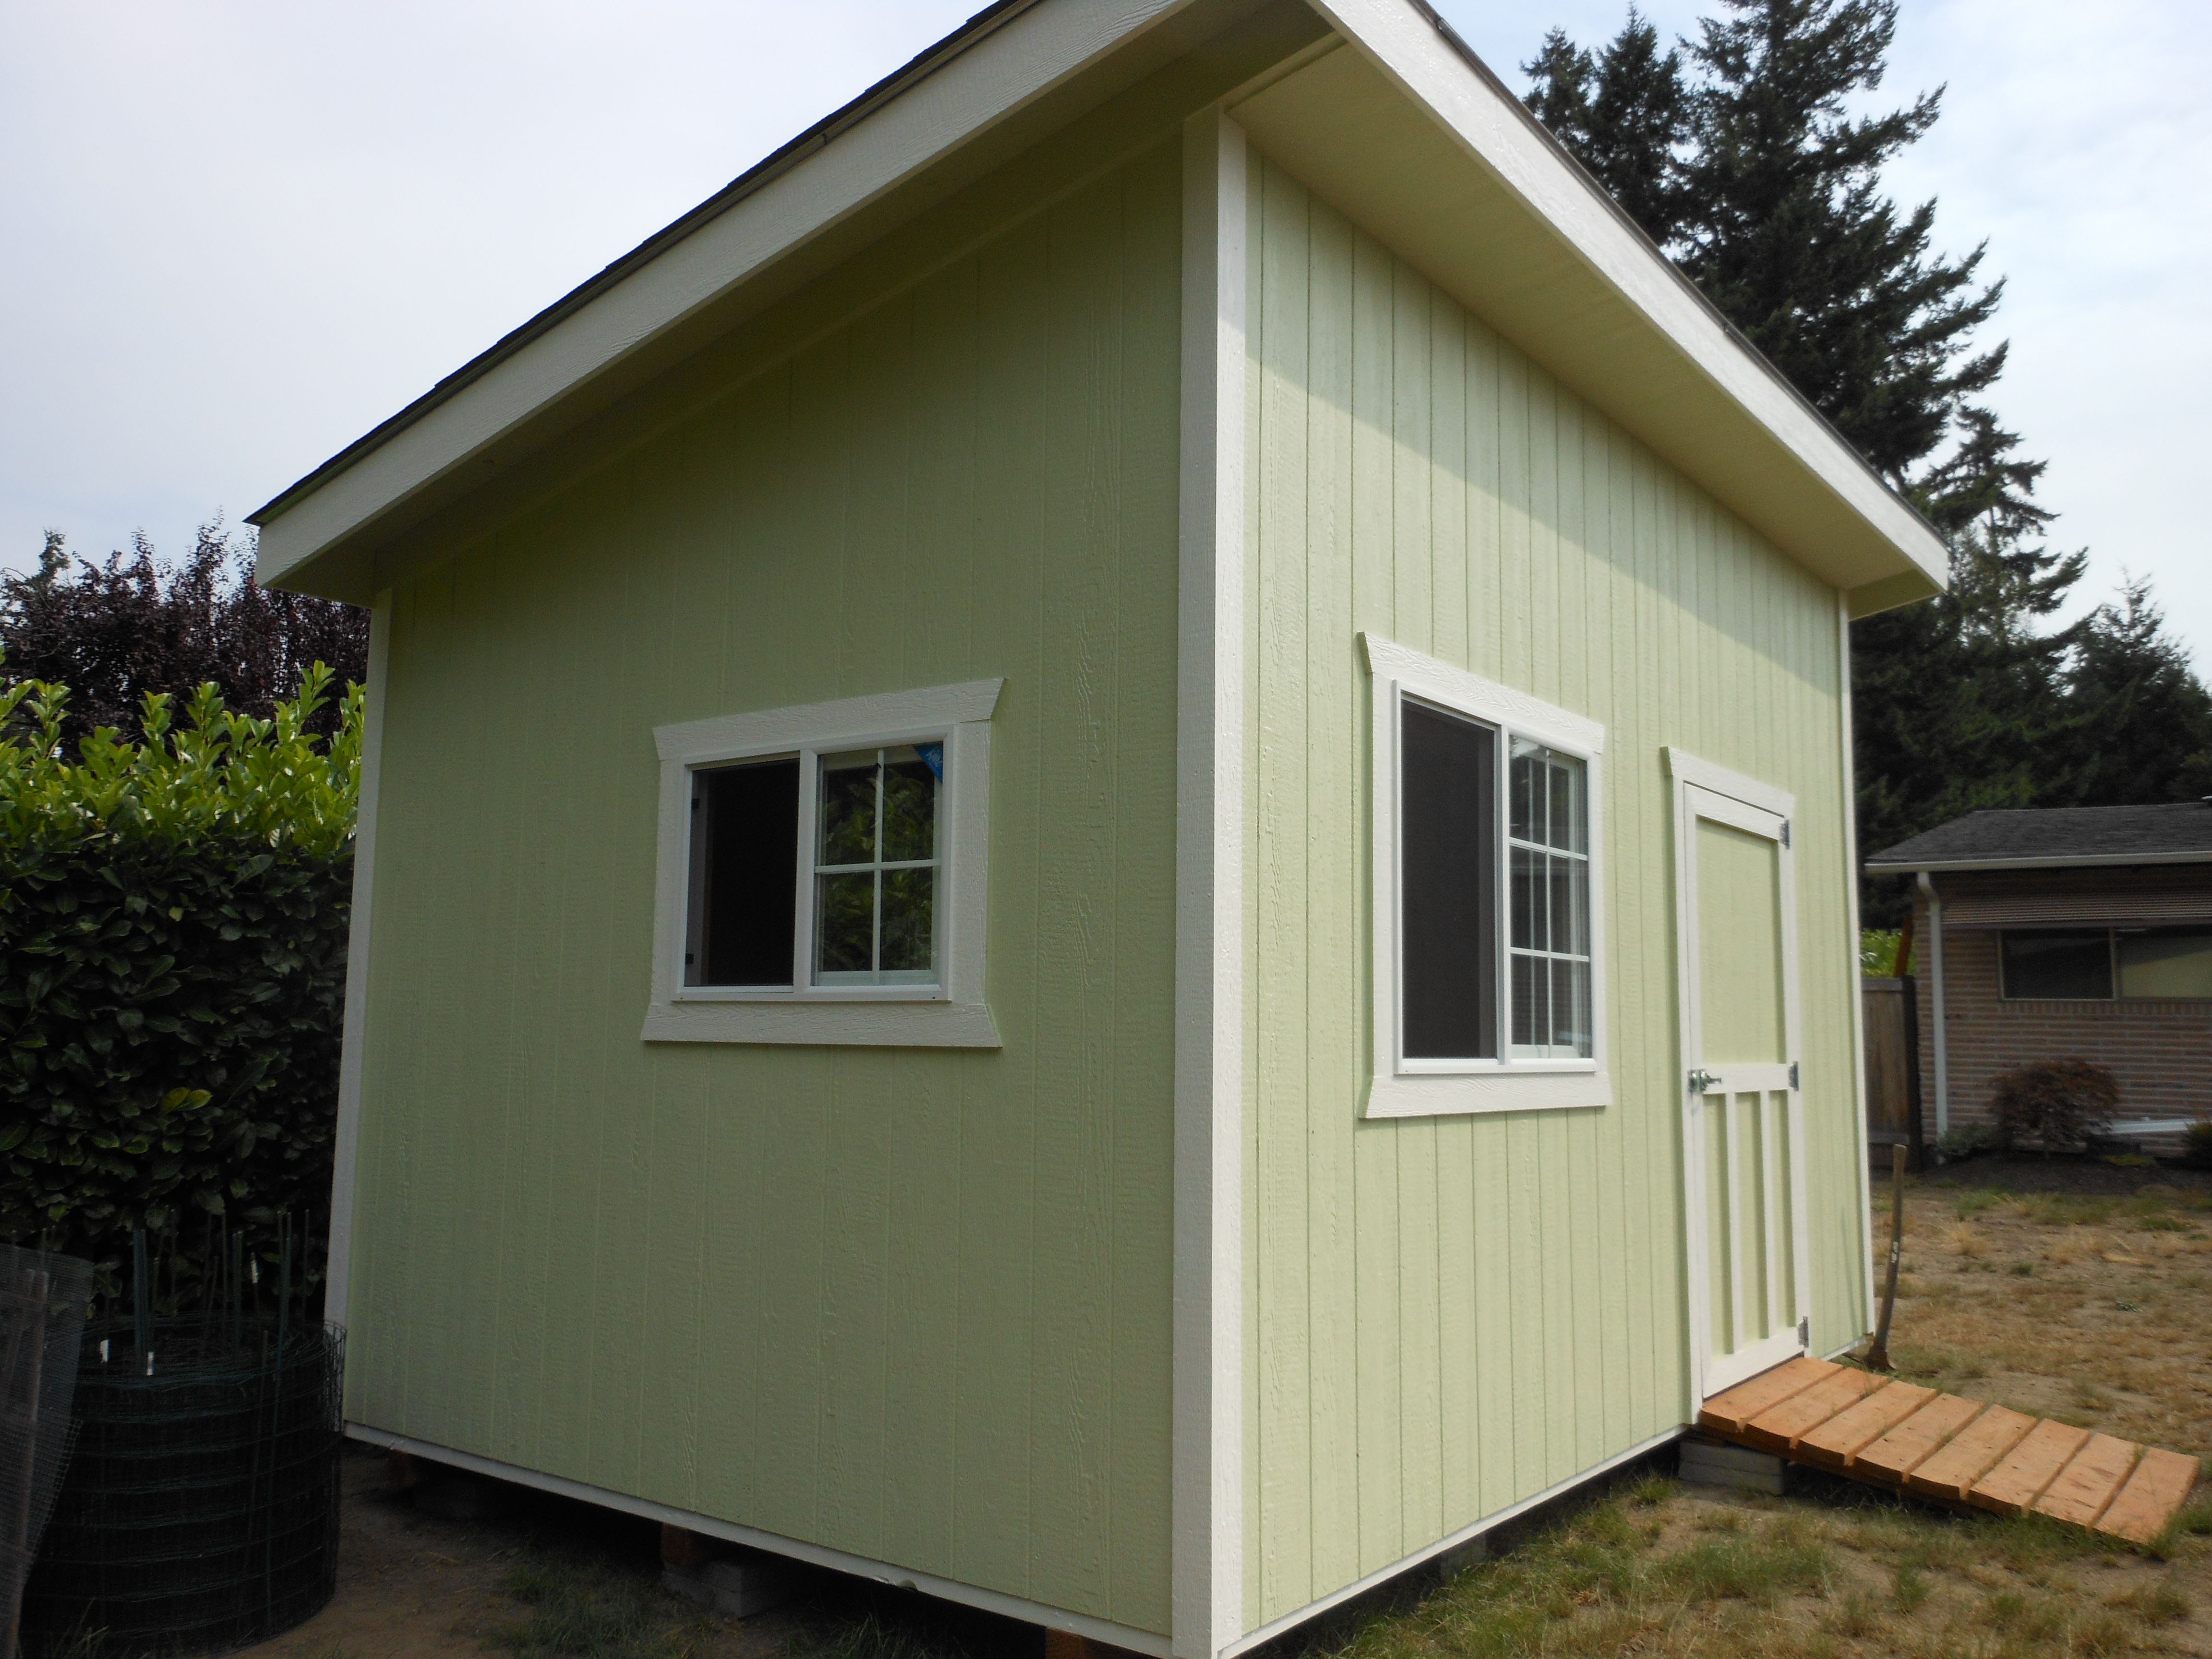 Slant roof style storage garden shed tool shed for Shed roofs